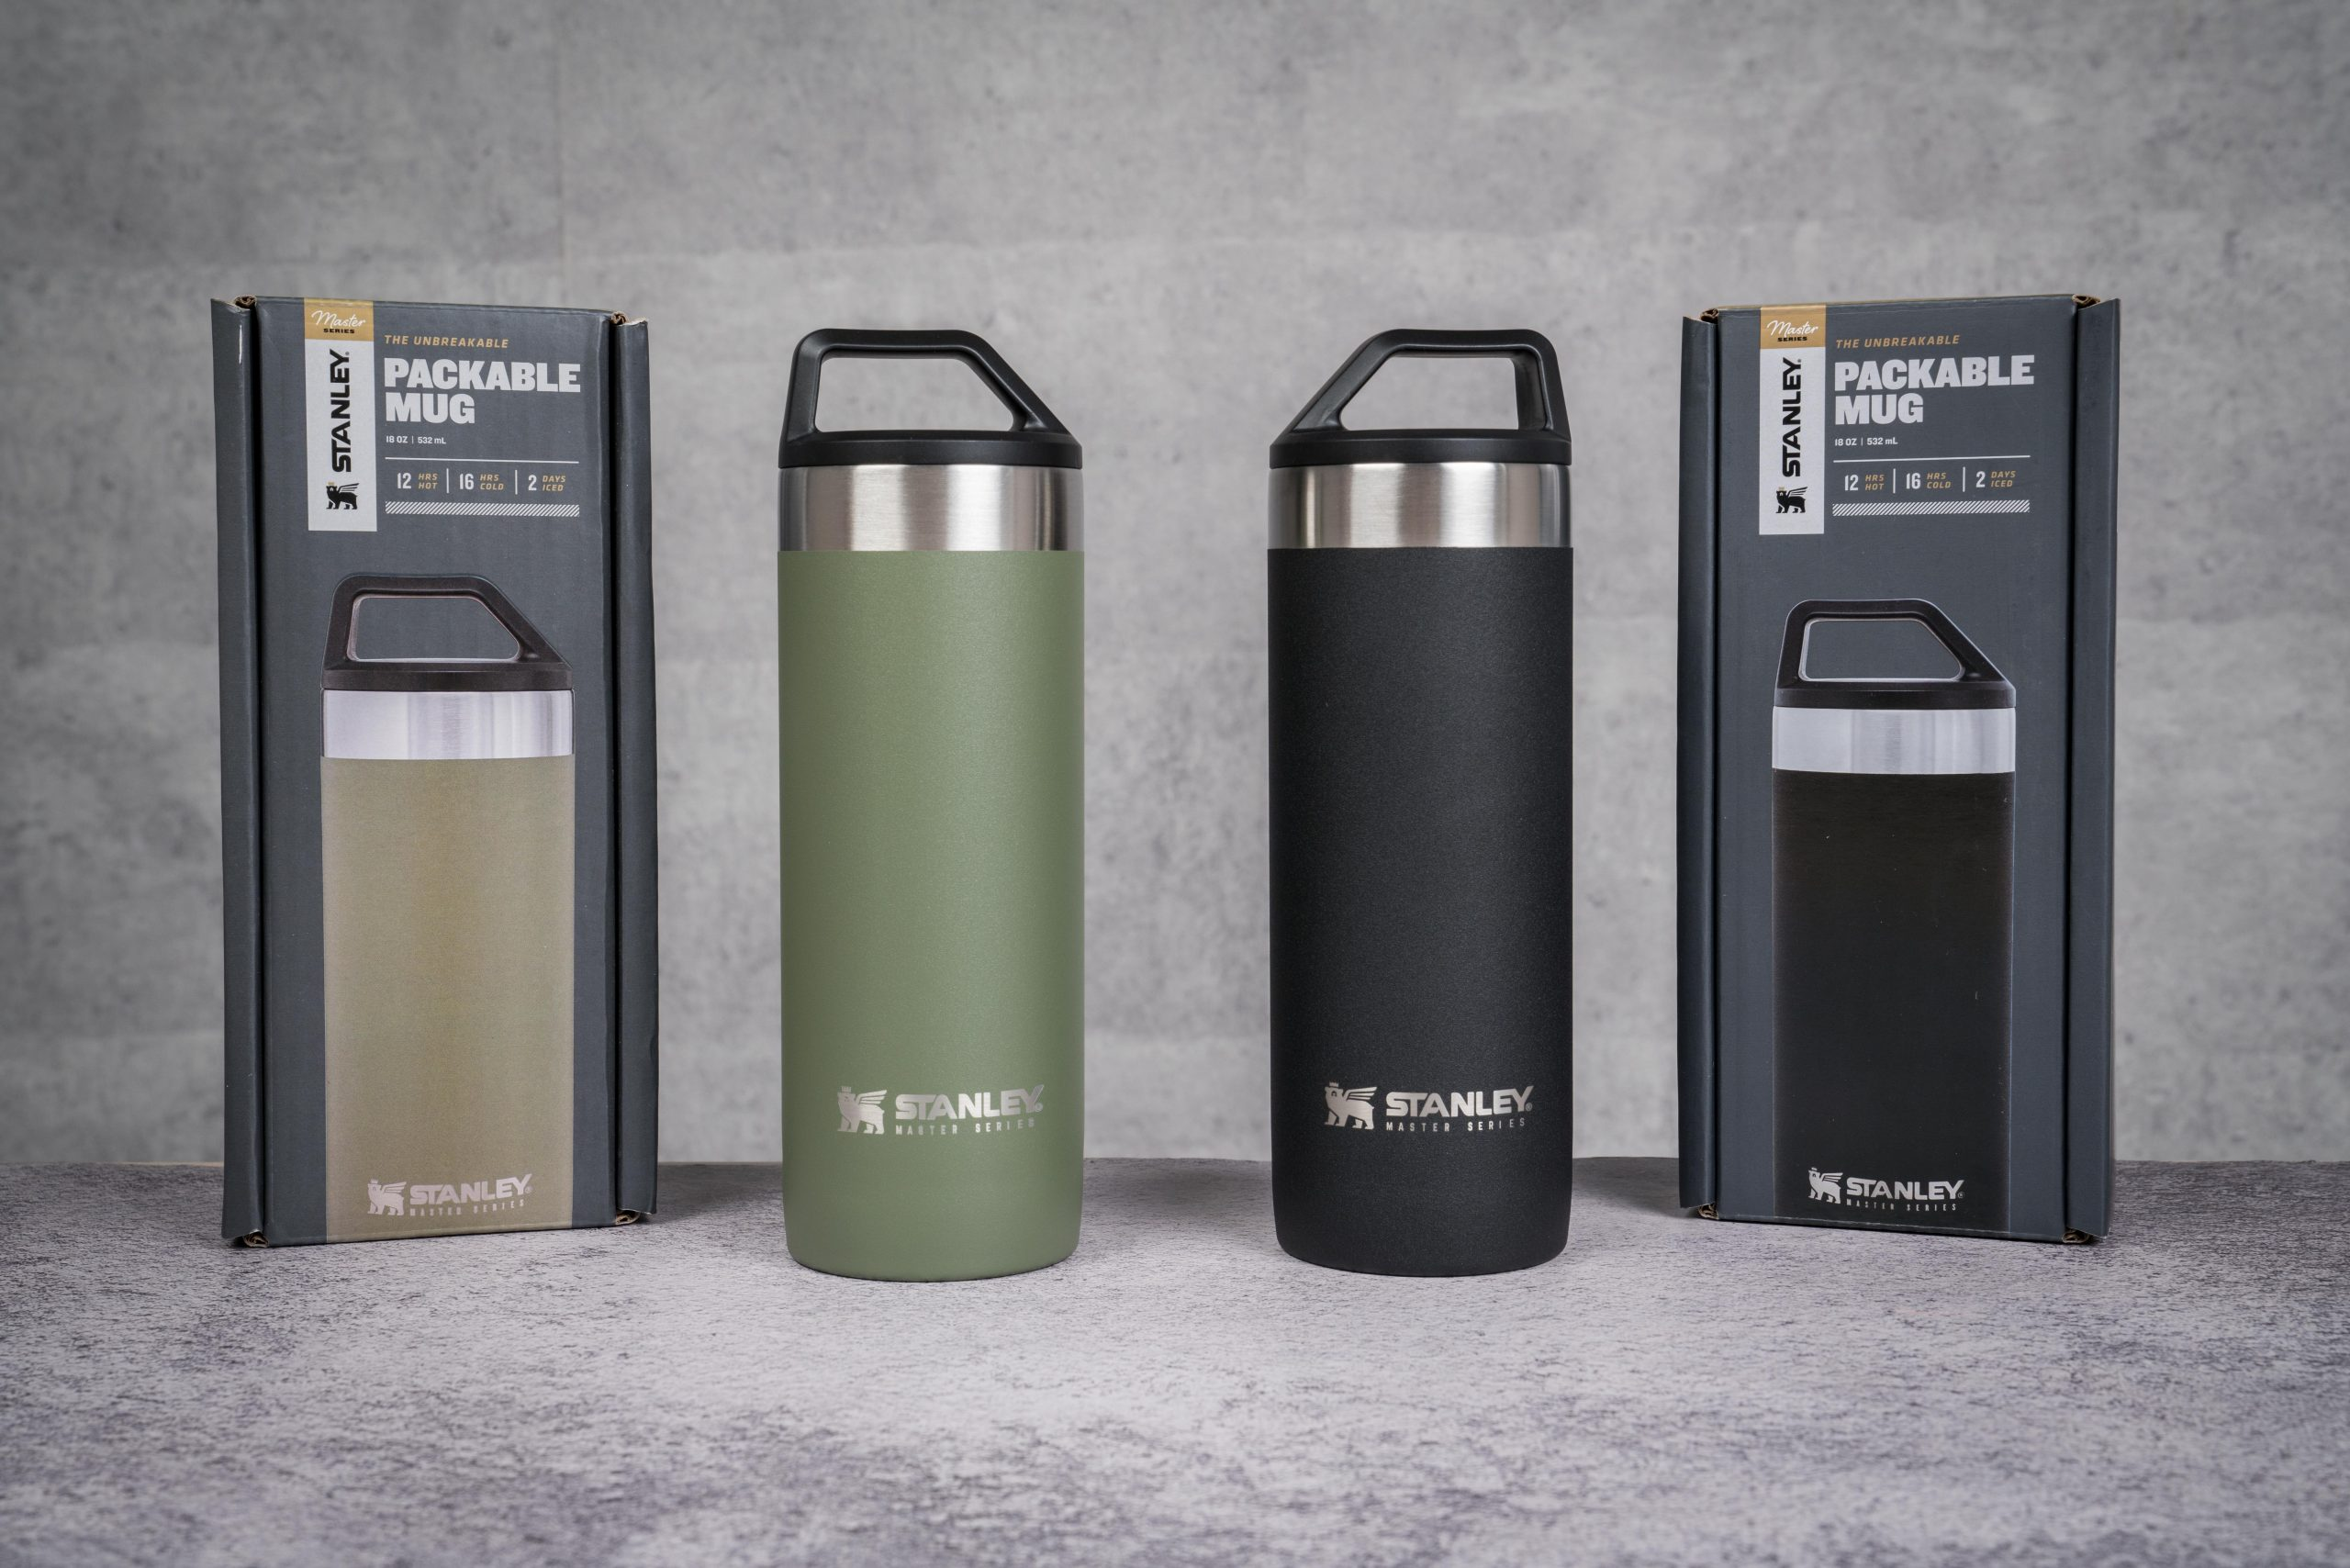 Bình giữ nhiệt Stanley Master Unbreakable Packable Mug | 18 OZ